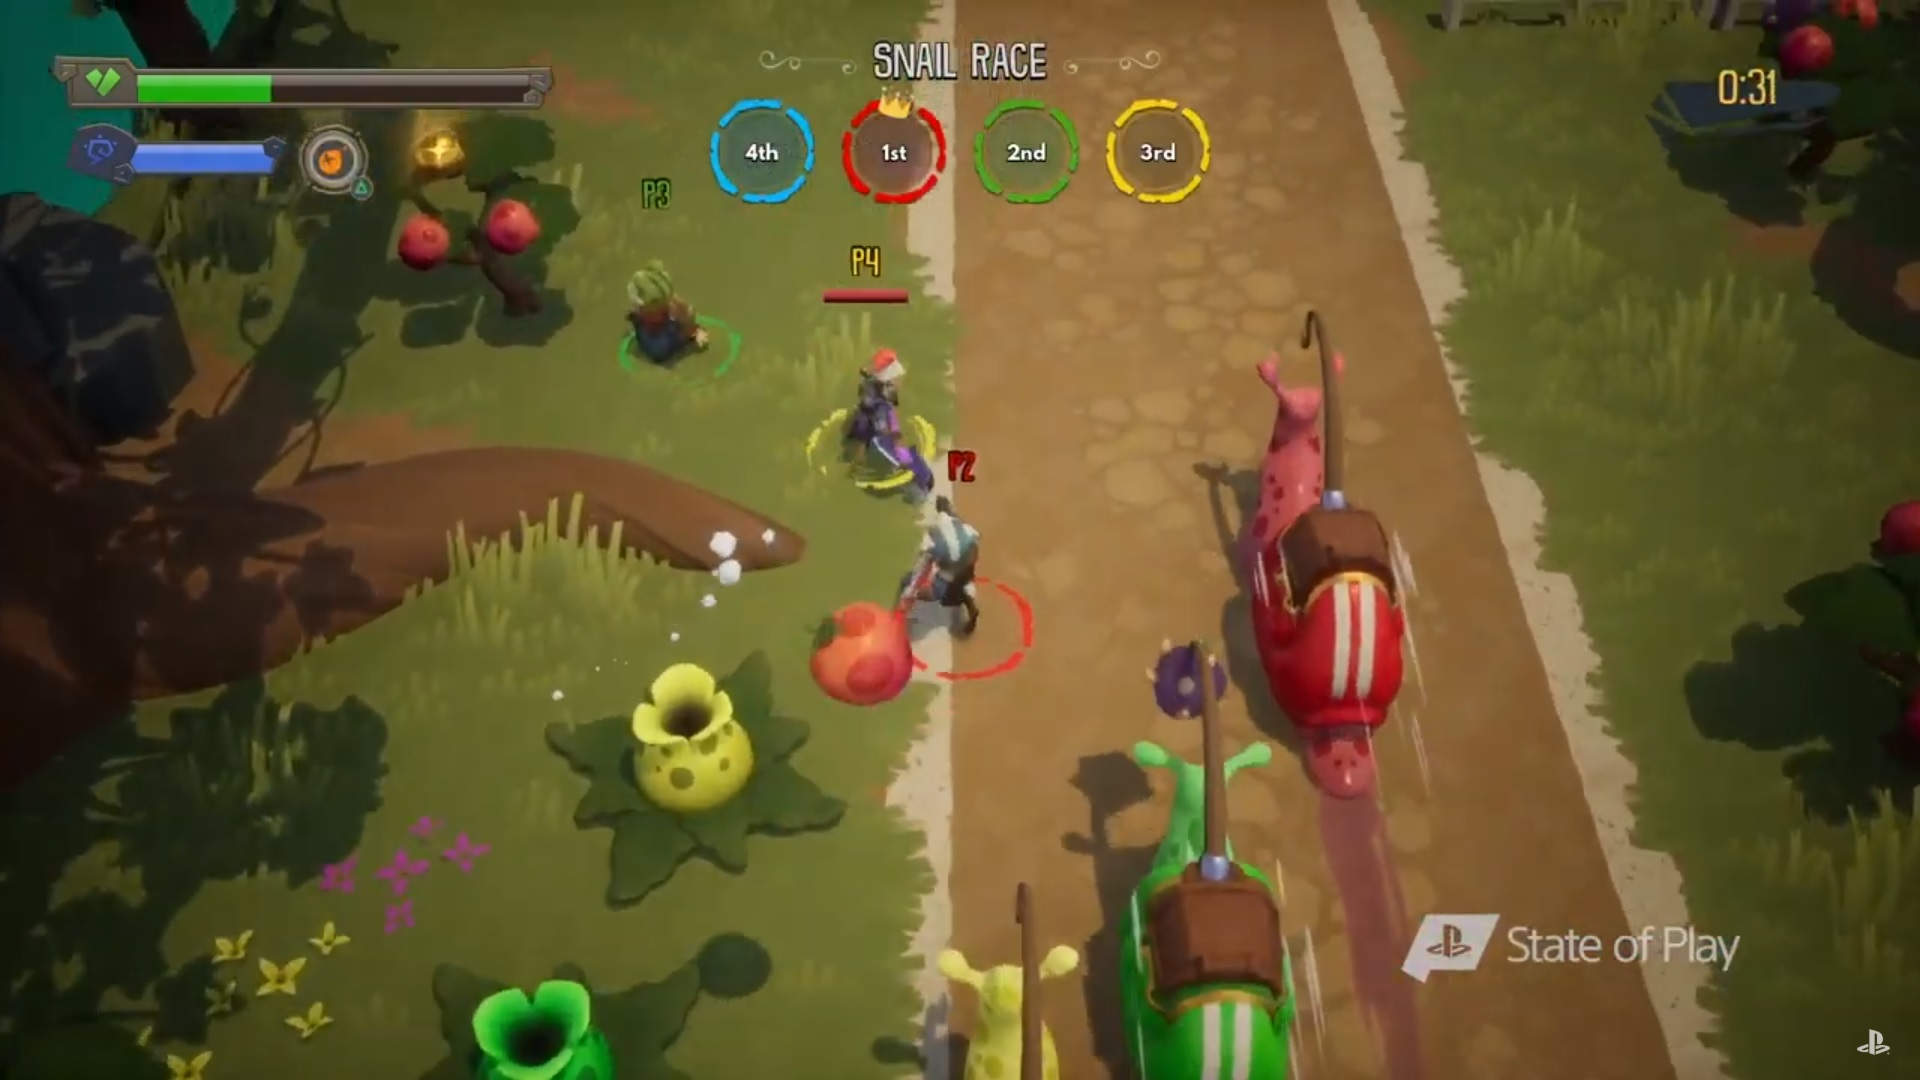 ReadySet Heroes mixes hack-n-slash combat with online competition